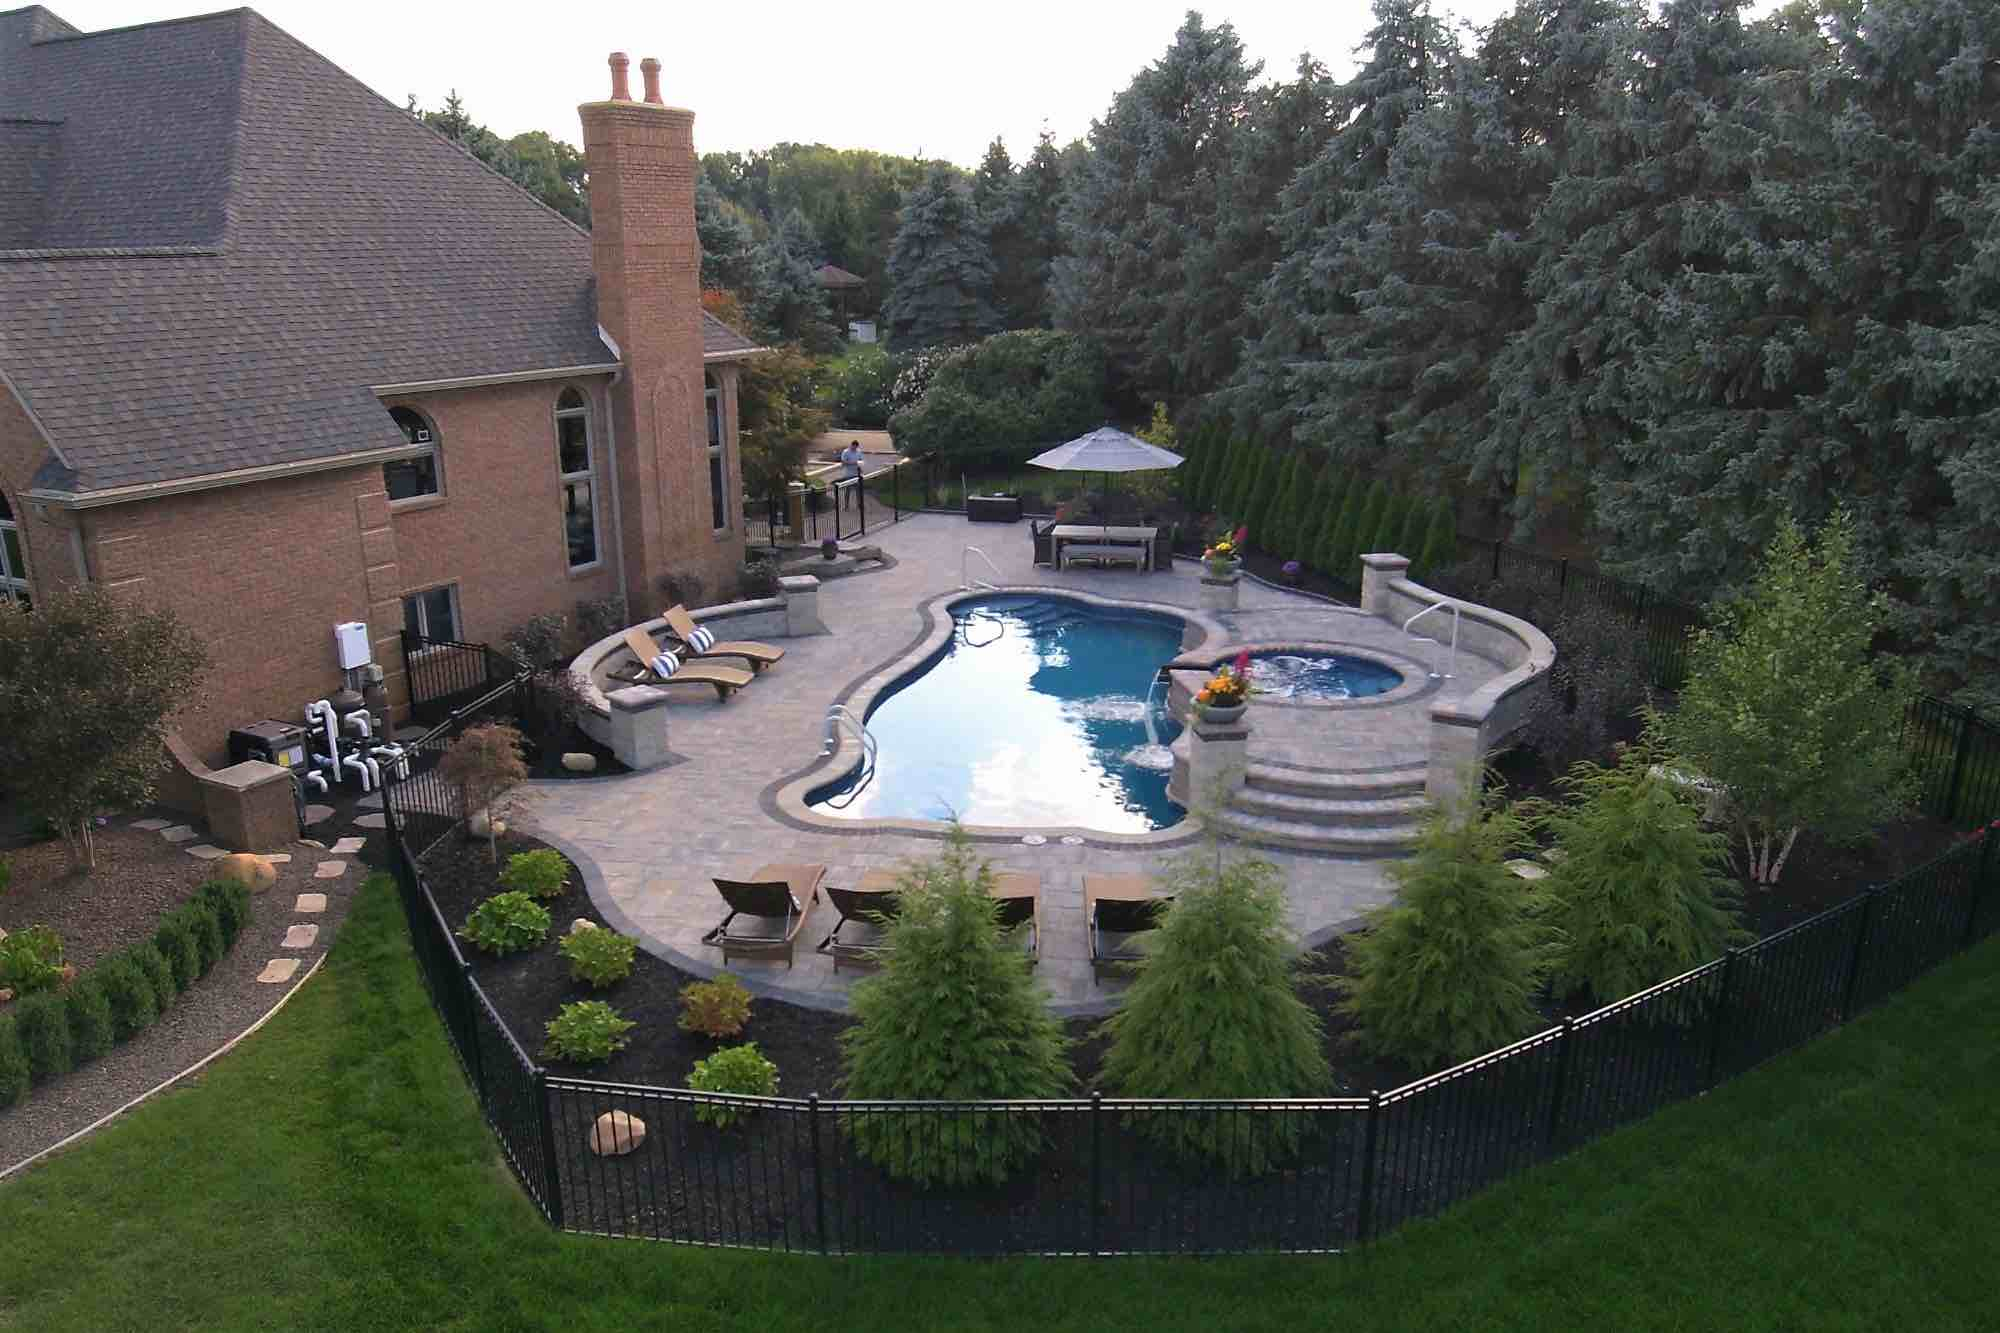 aerial view of backyard pool with hot tub spillover attached